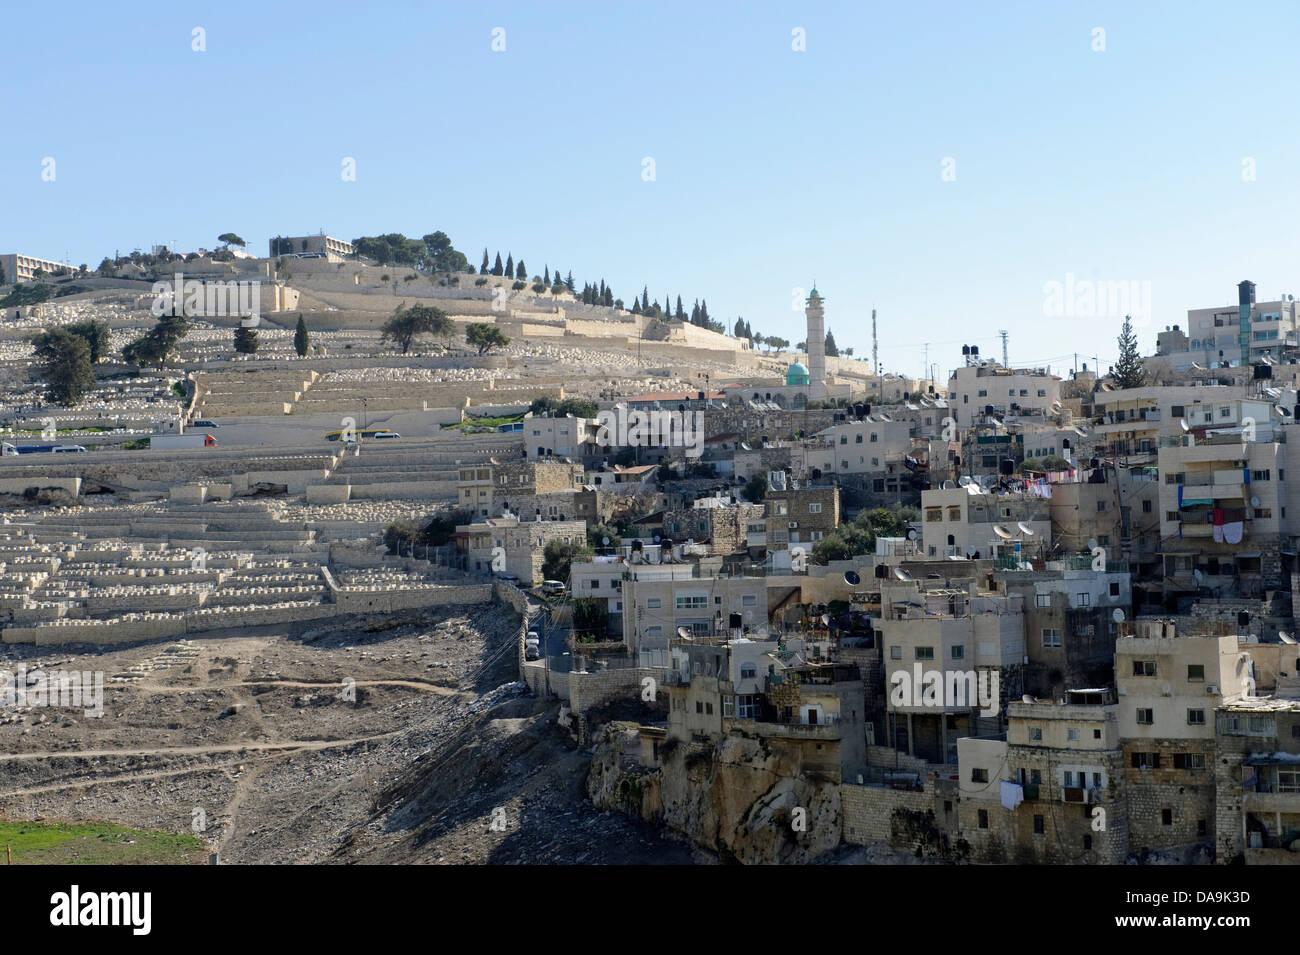 Cemetery, Israel, Jerusalem, Middle East, Near East, Mount of Olives, hill, houses, homes, Stock Photo